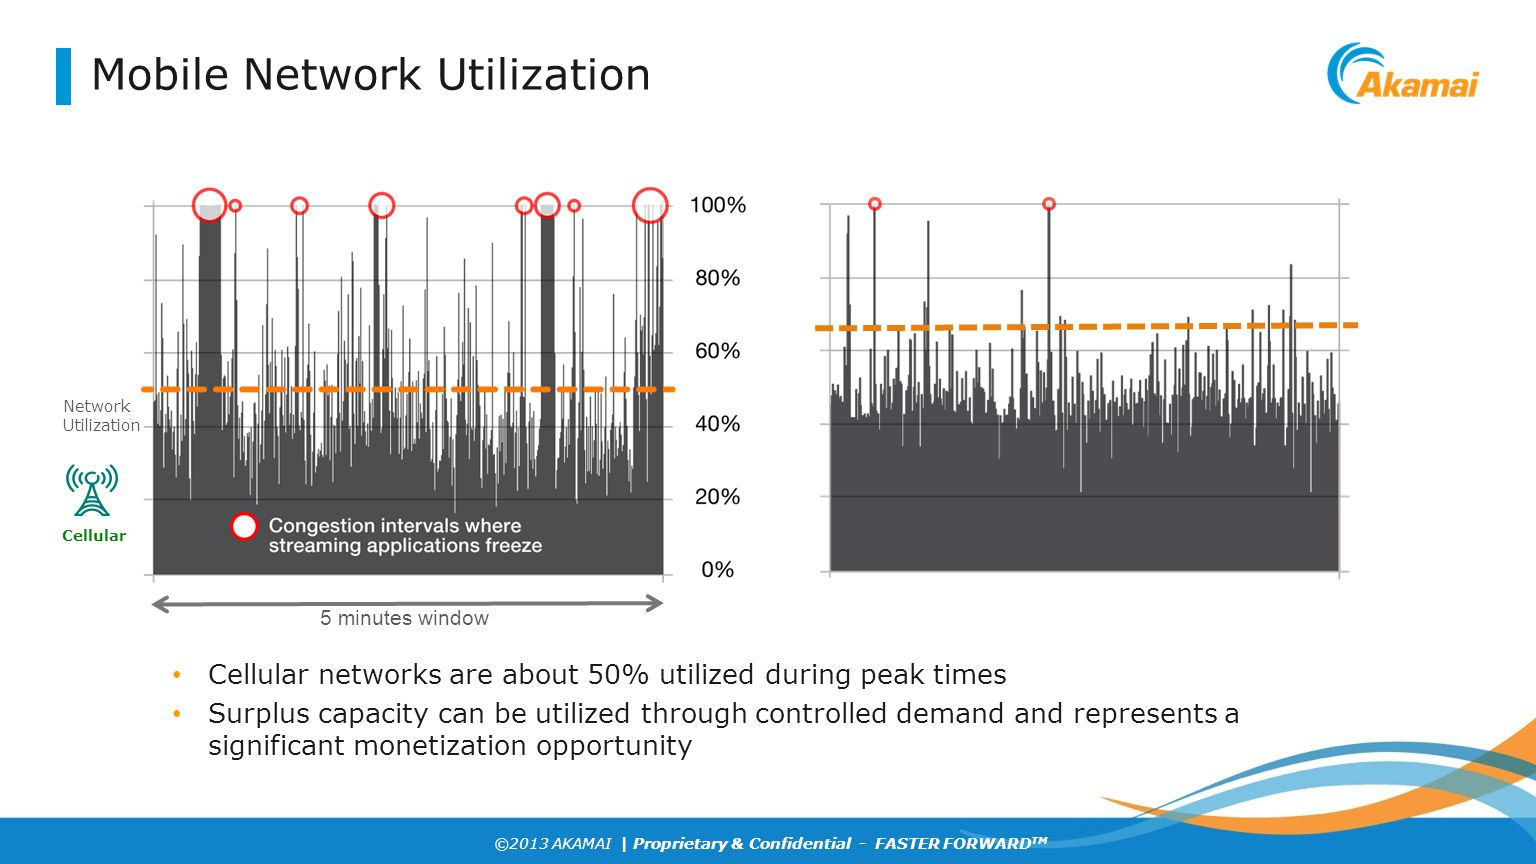 Mobile Network Utilization